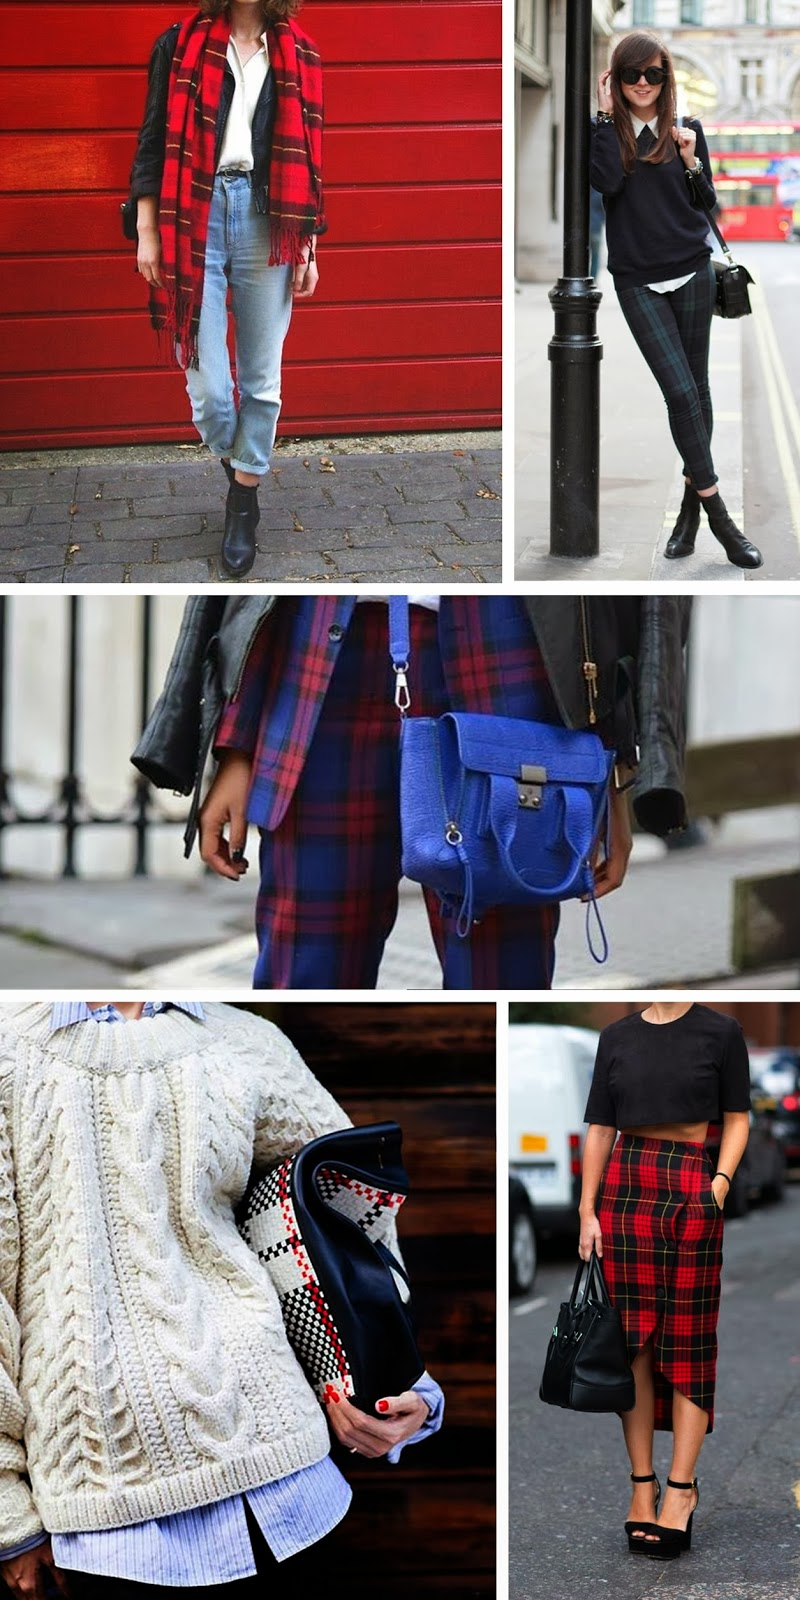 tartan trend, plaid, fashion trend 2013, check print, tartan print inspiration, vogue tartan, tartan plaid scarf suit, fashion blogger, fashion blog tartan midi skirt bag